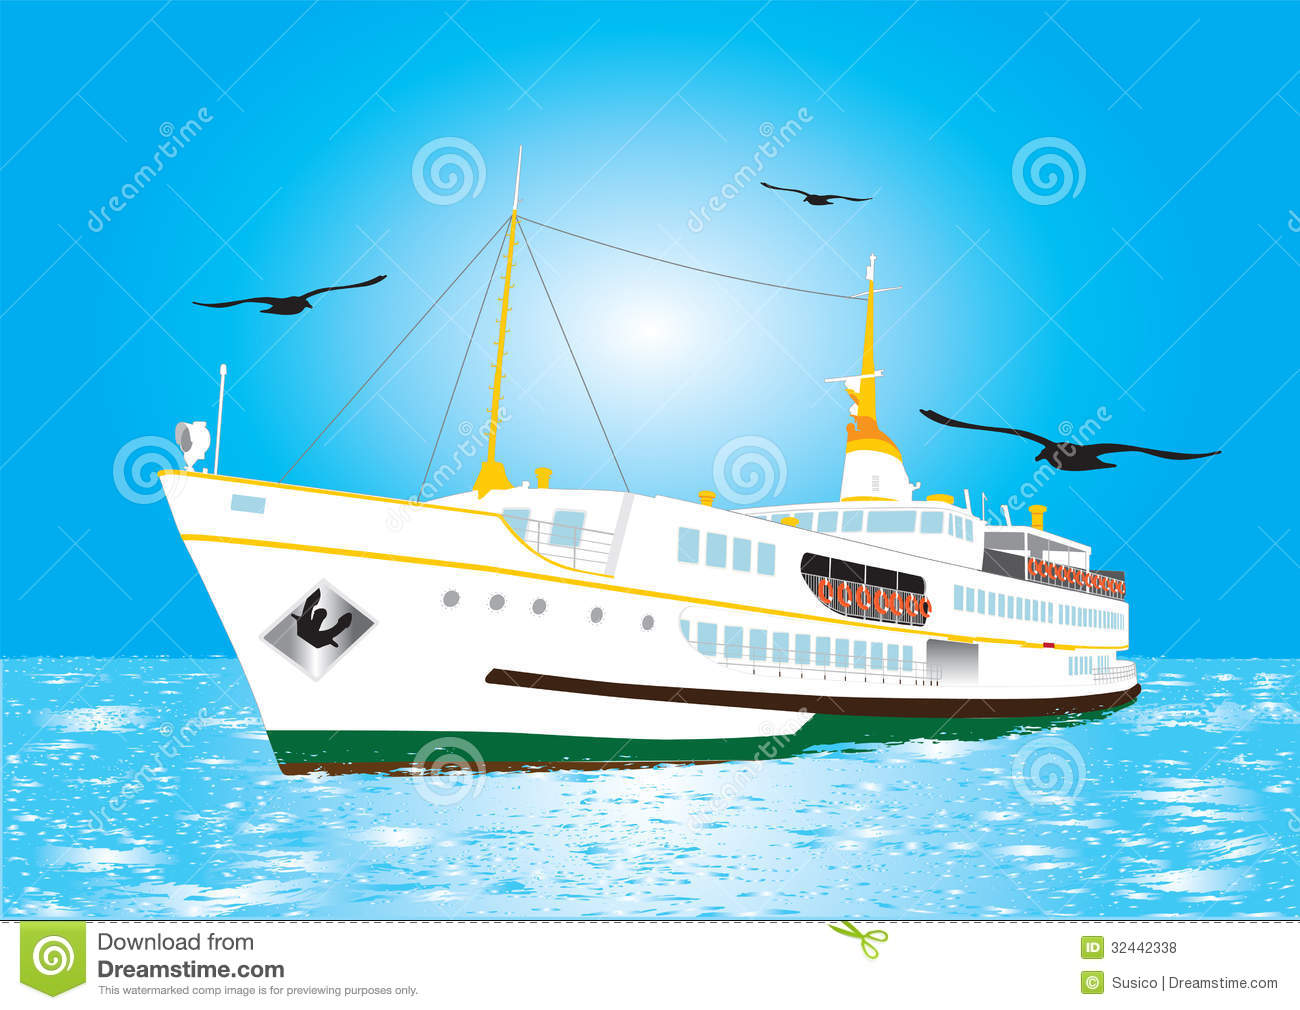 Istanbul Ferry Vector Illustration In The Istanbul Royalty Free.